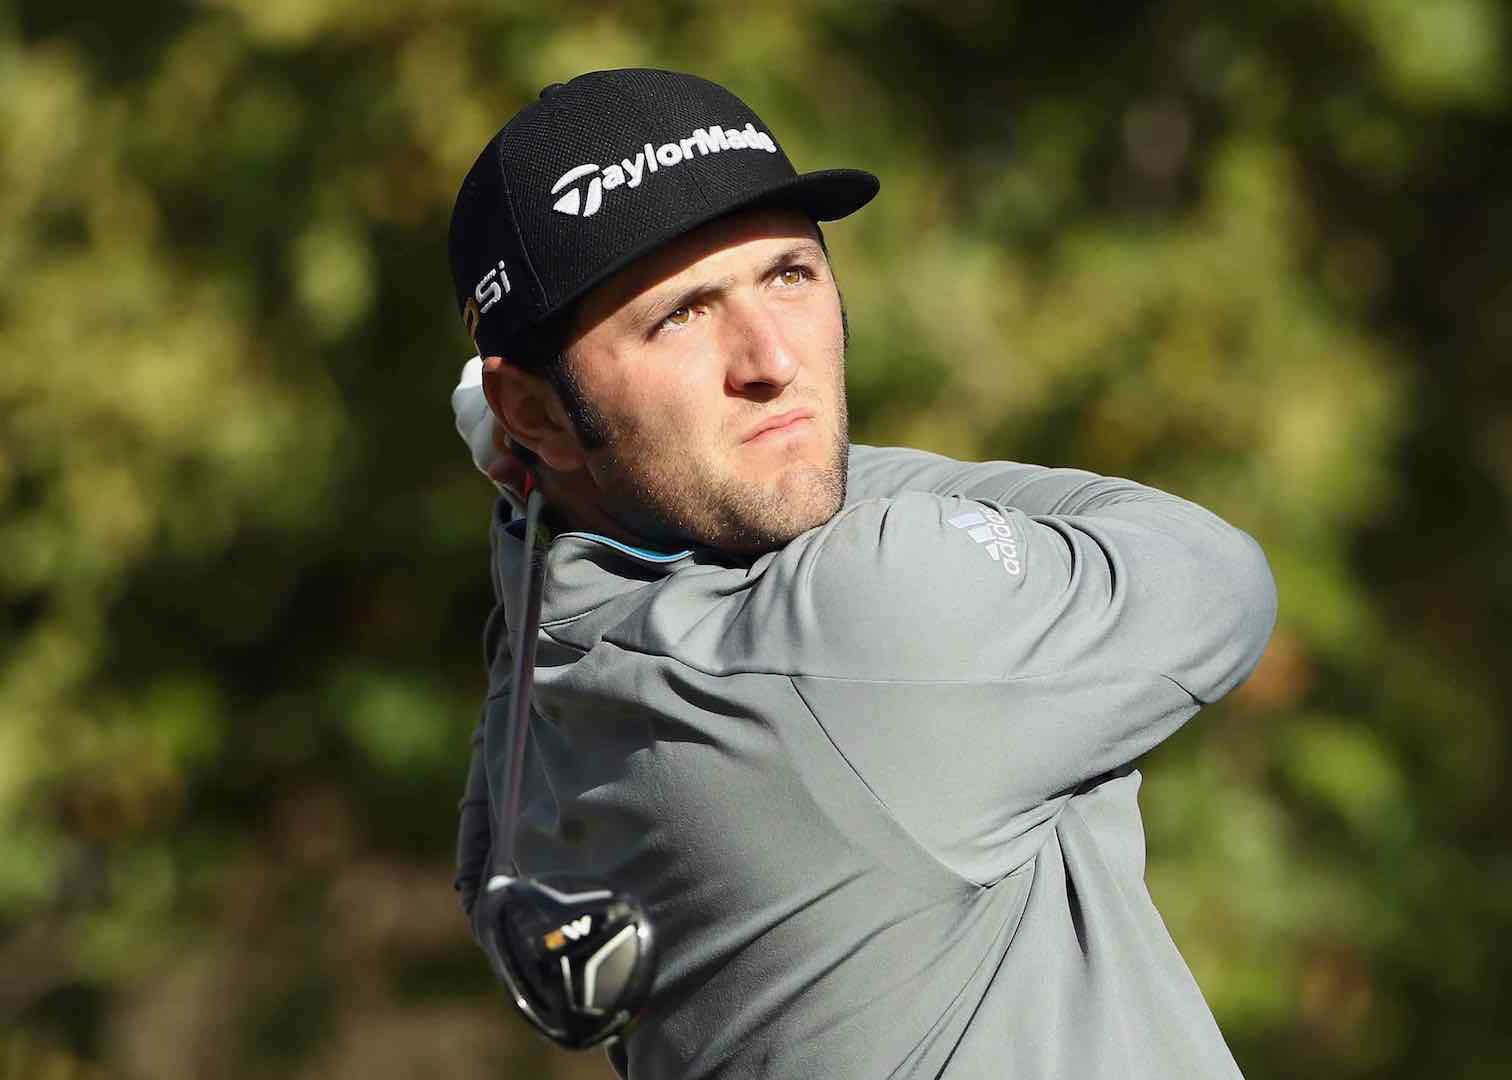 Jon Rahm wins the Farmers Insurance